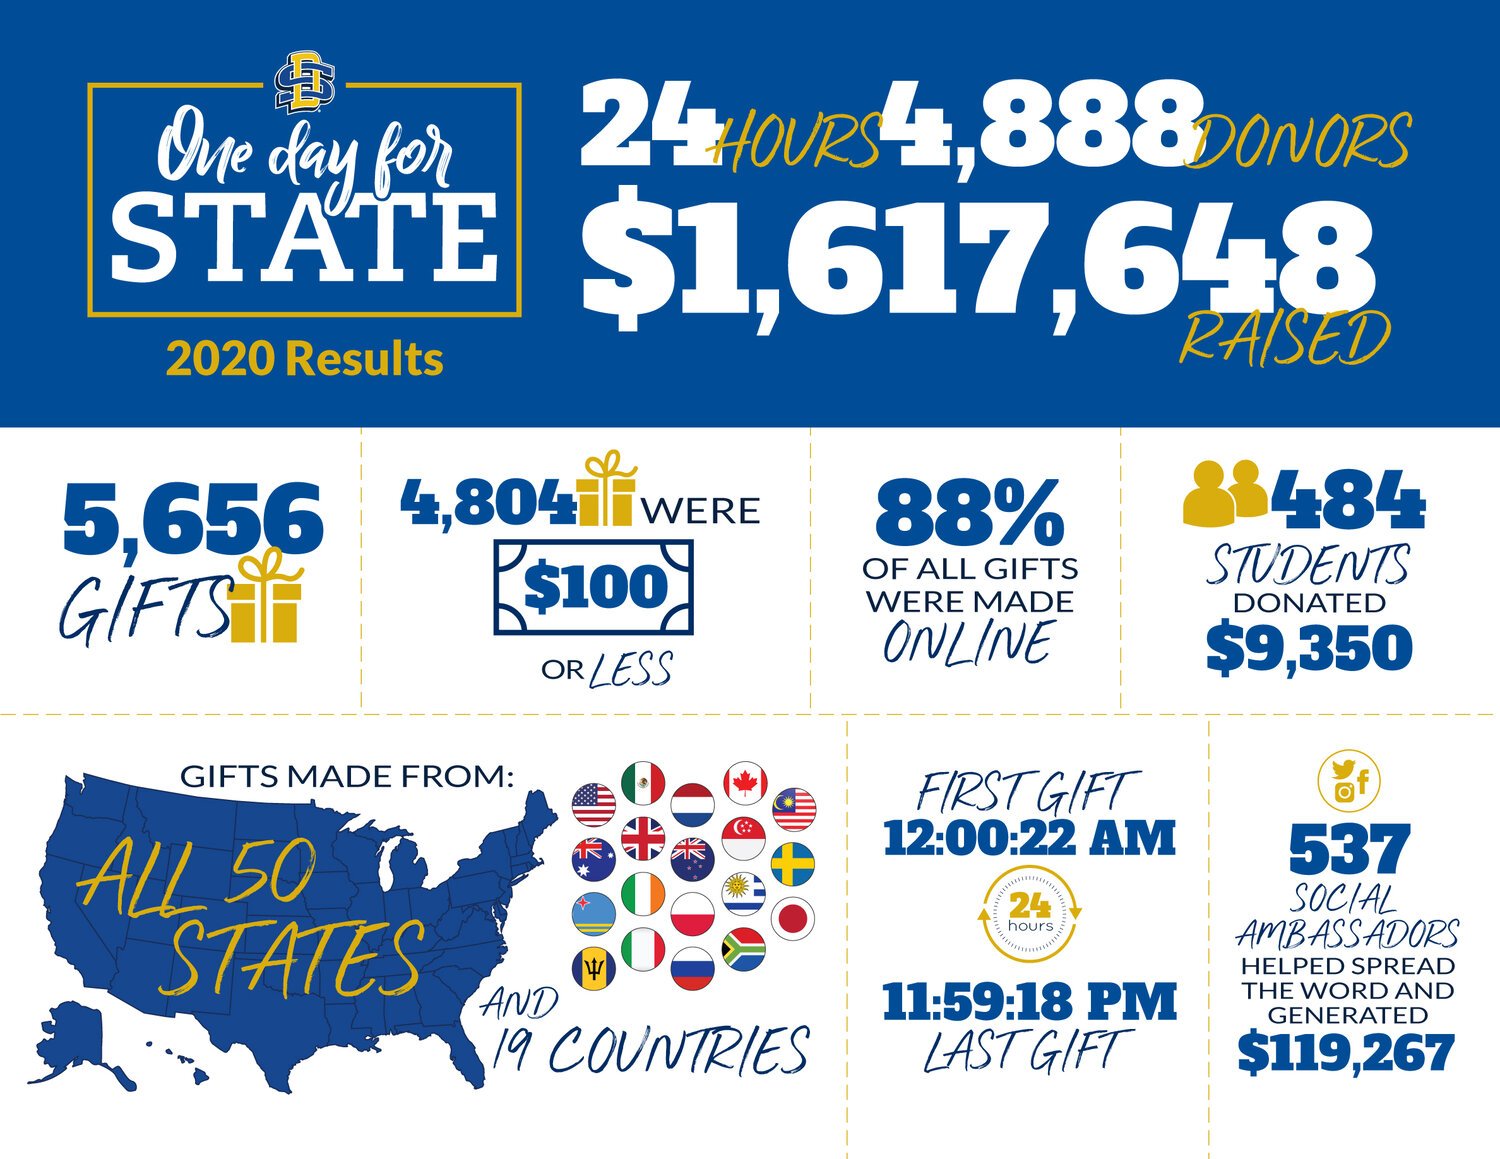 South Dakota State's mid-pandemic giving day was the institution's best to date.